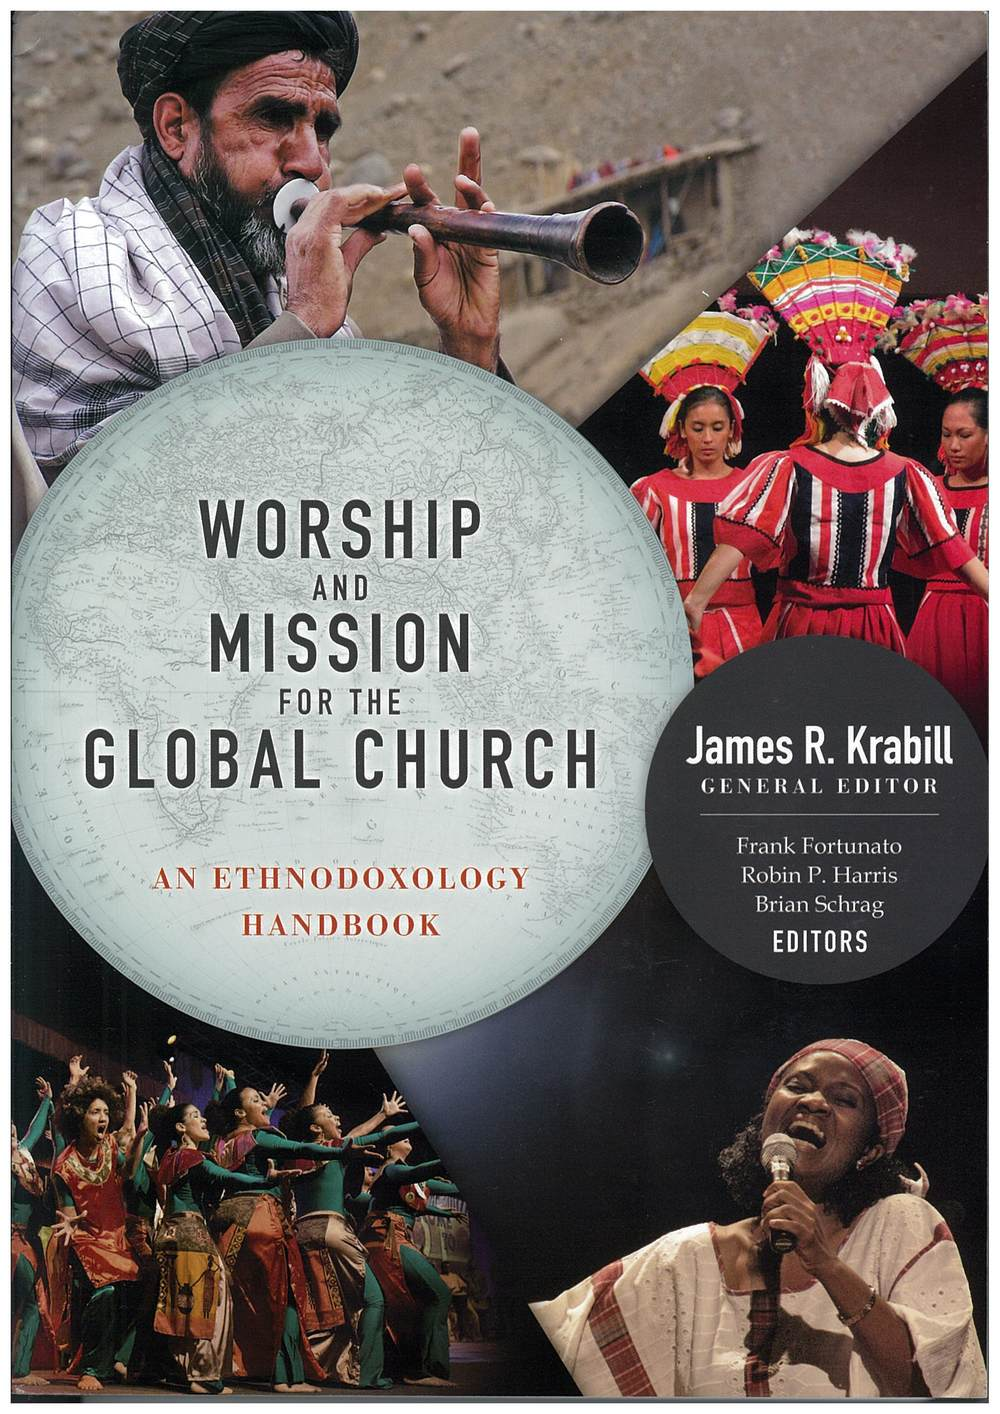 Worship-and-Mission-Handbook-Cover-Web.jpg